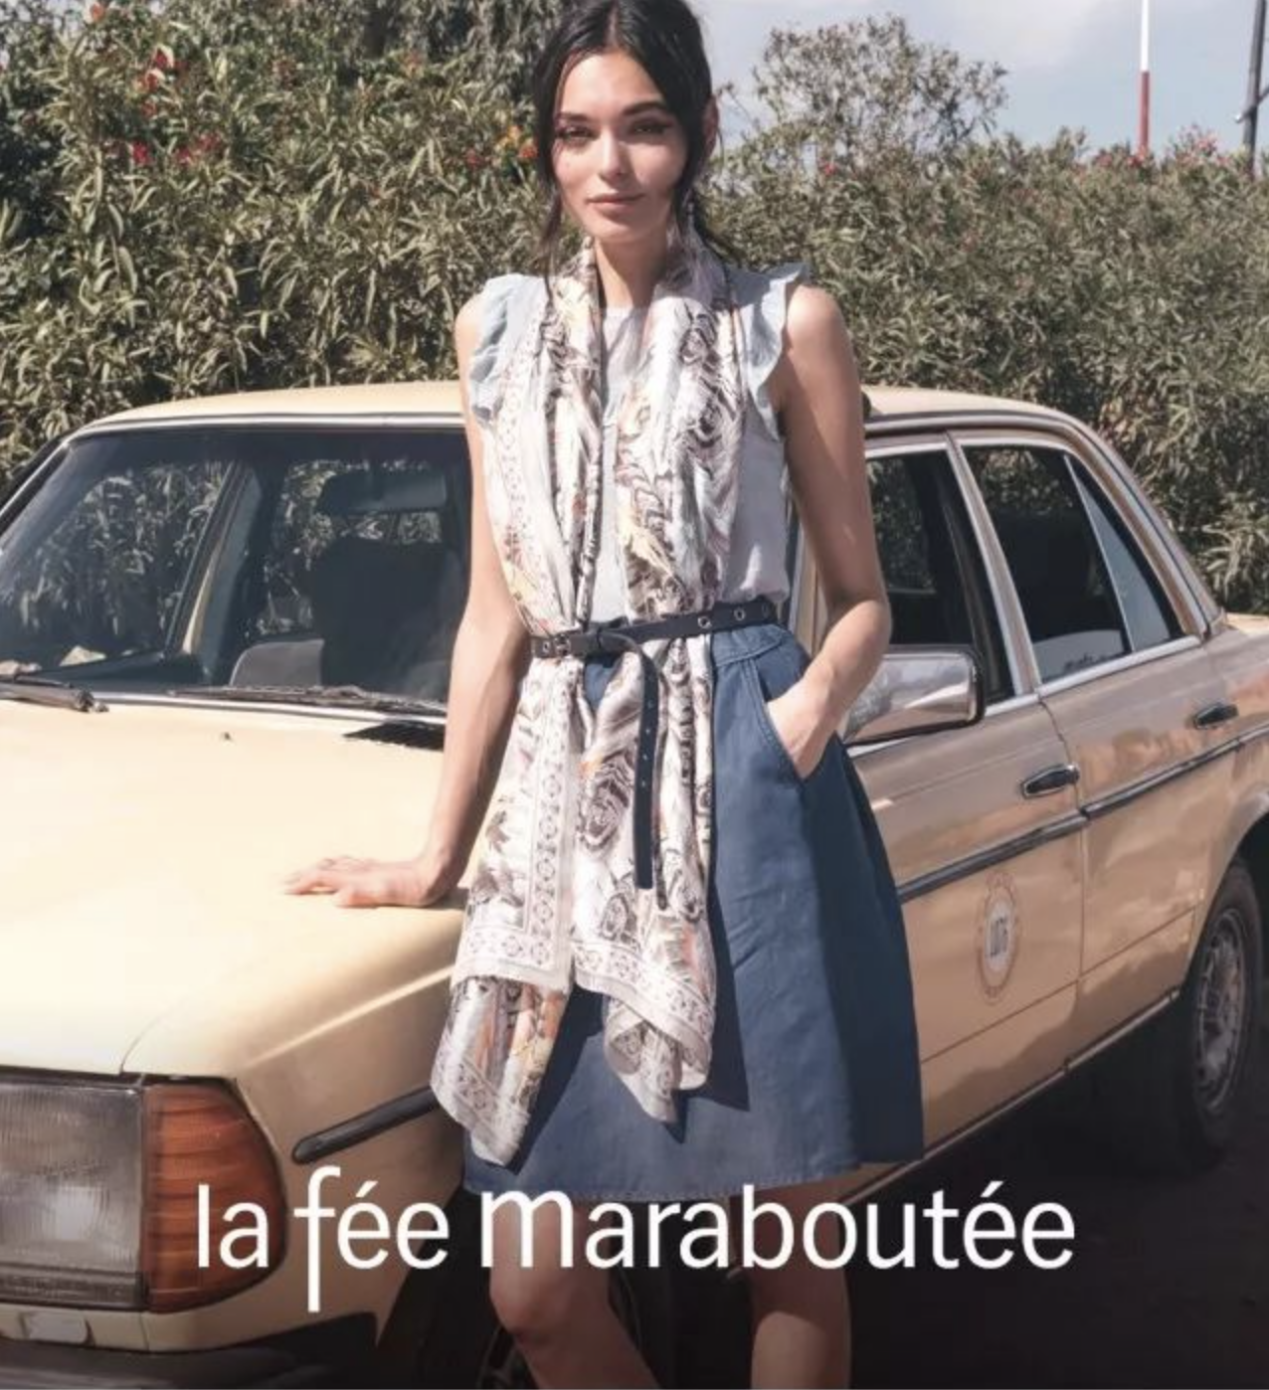 La fee maraboutee浪漫入驻唯品